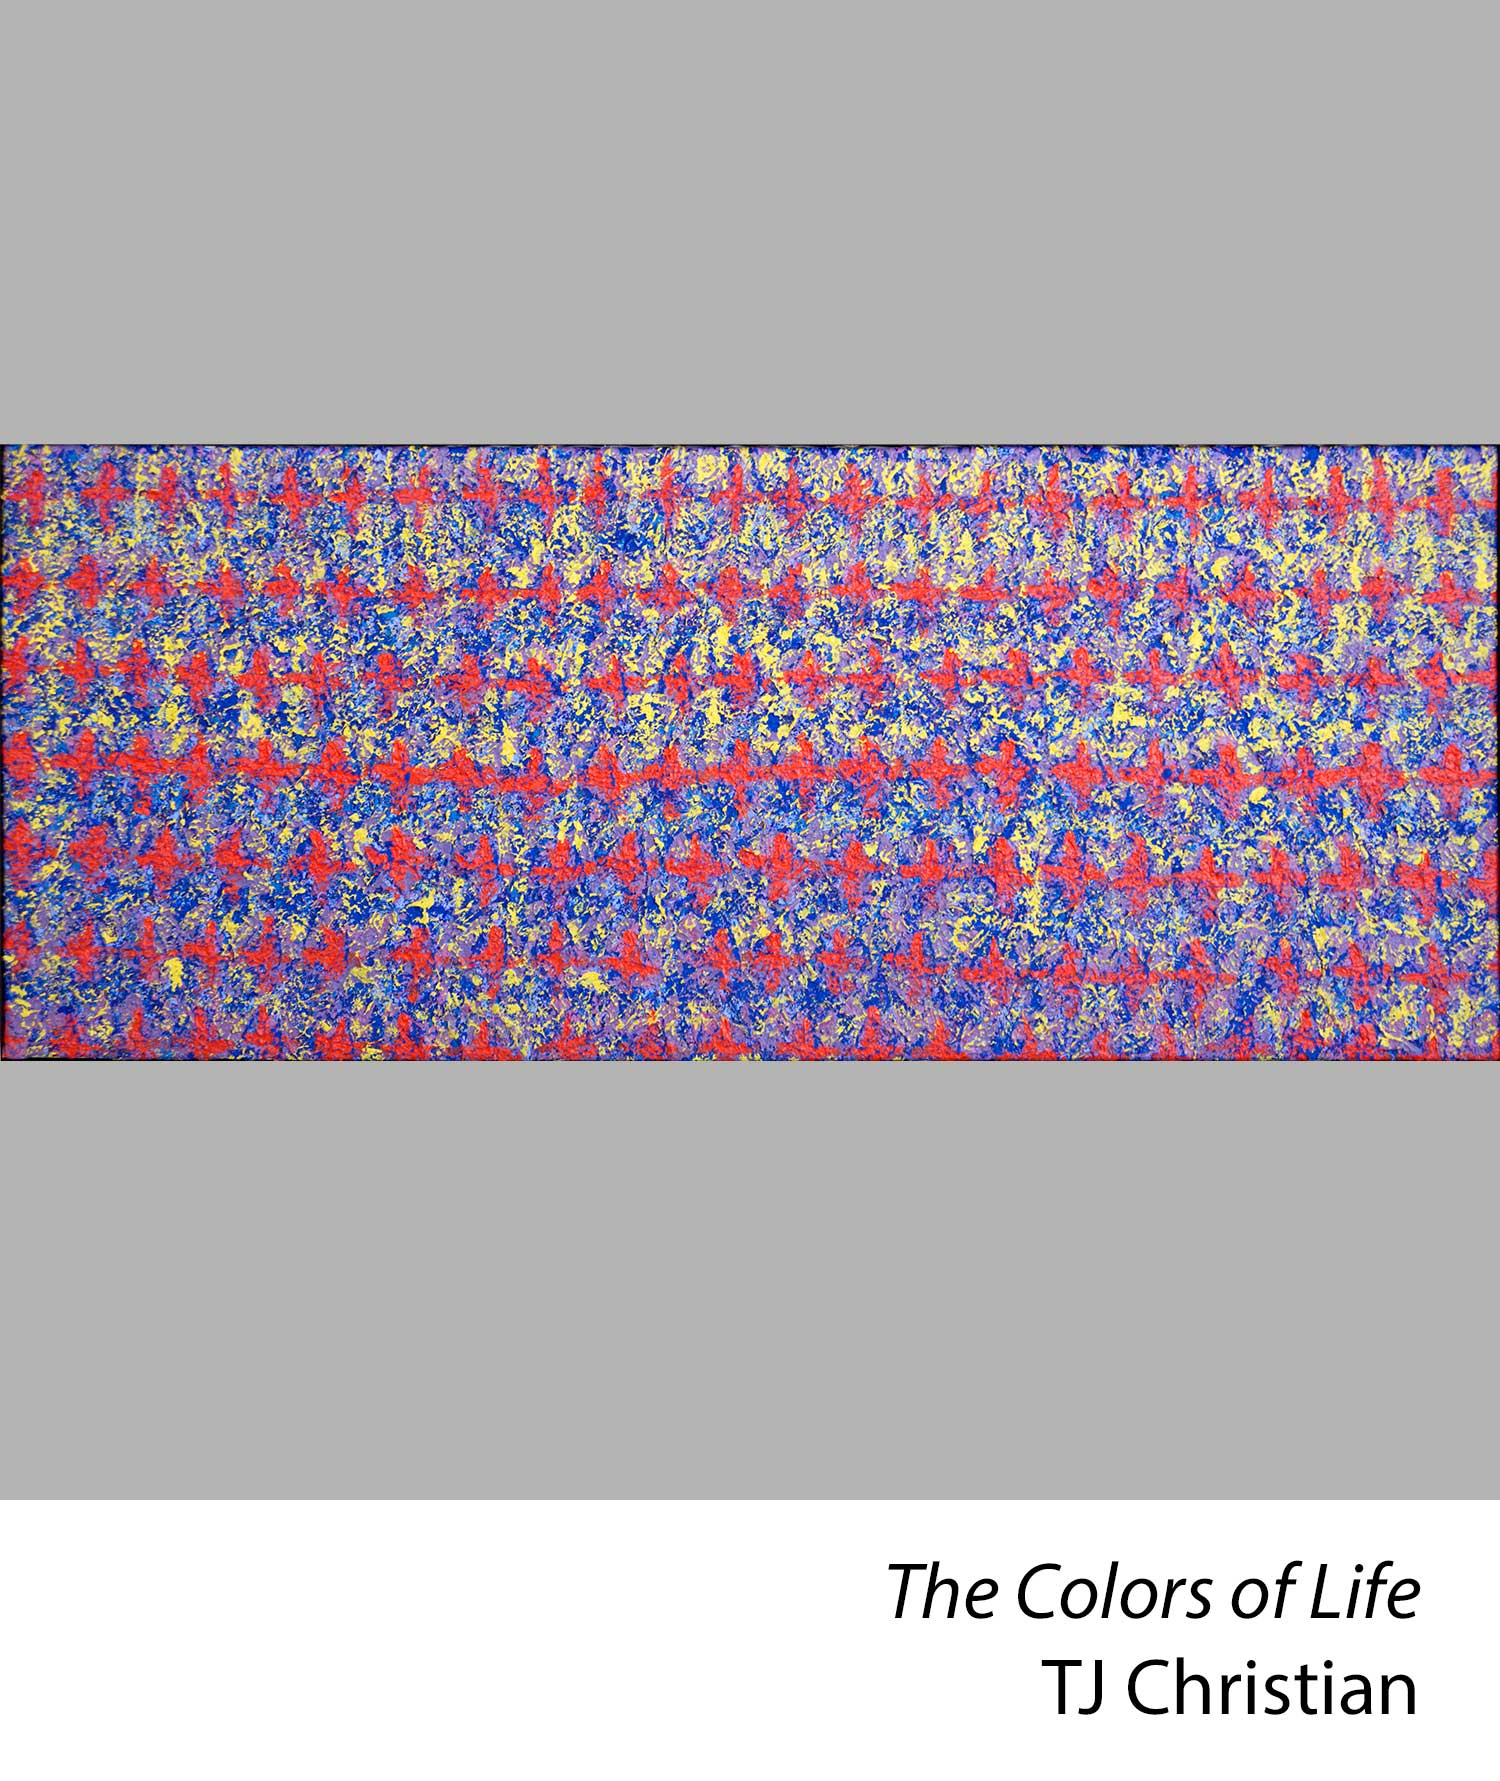 The Colors of Life by TJ Christian